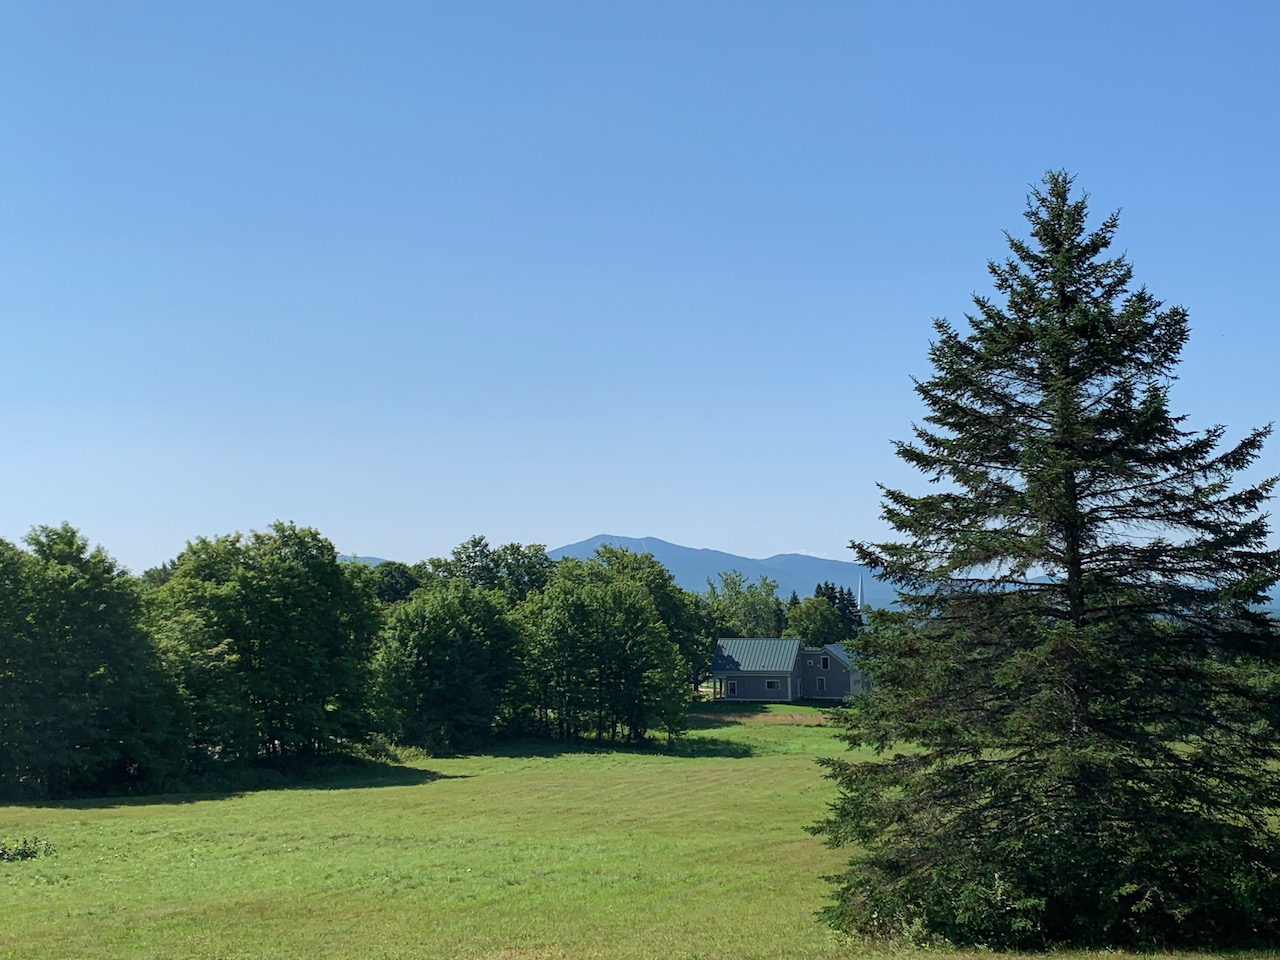 A nice view from the house in Newark, Vermont